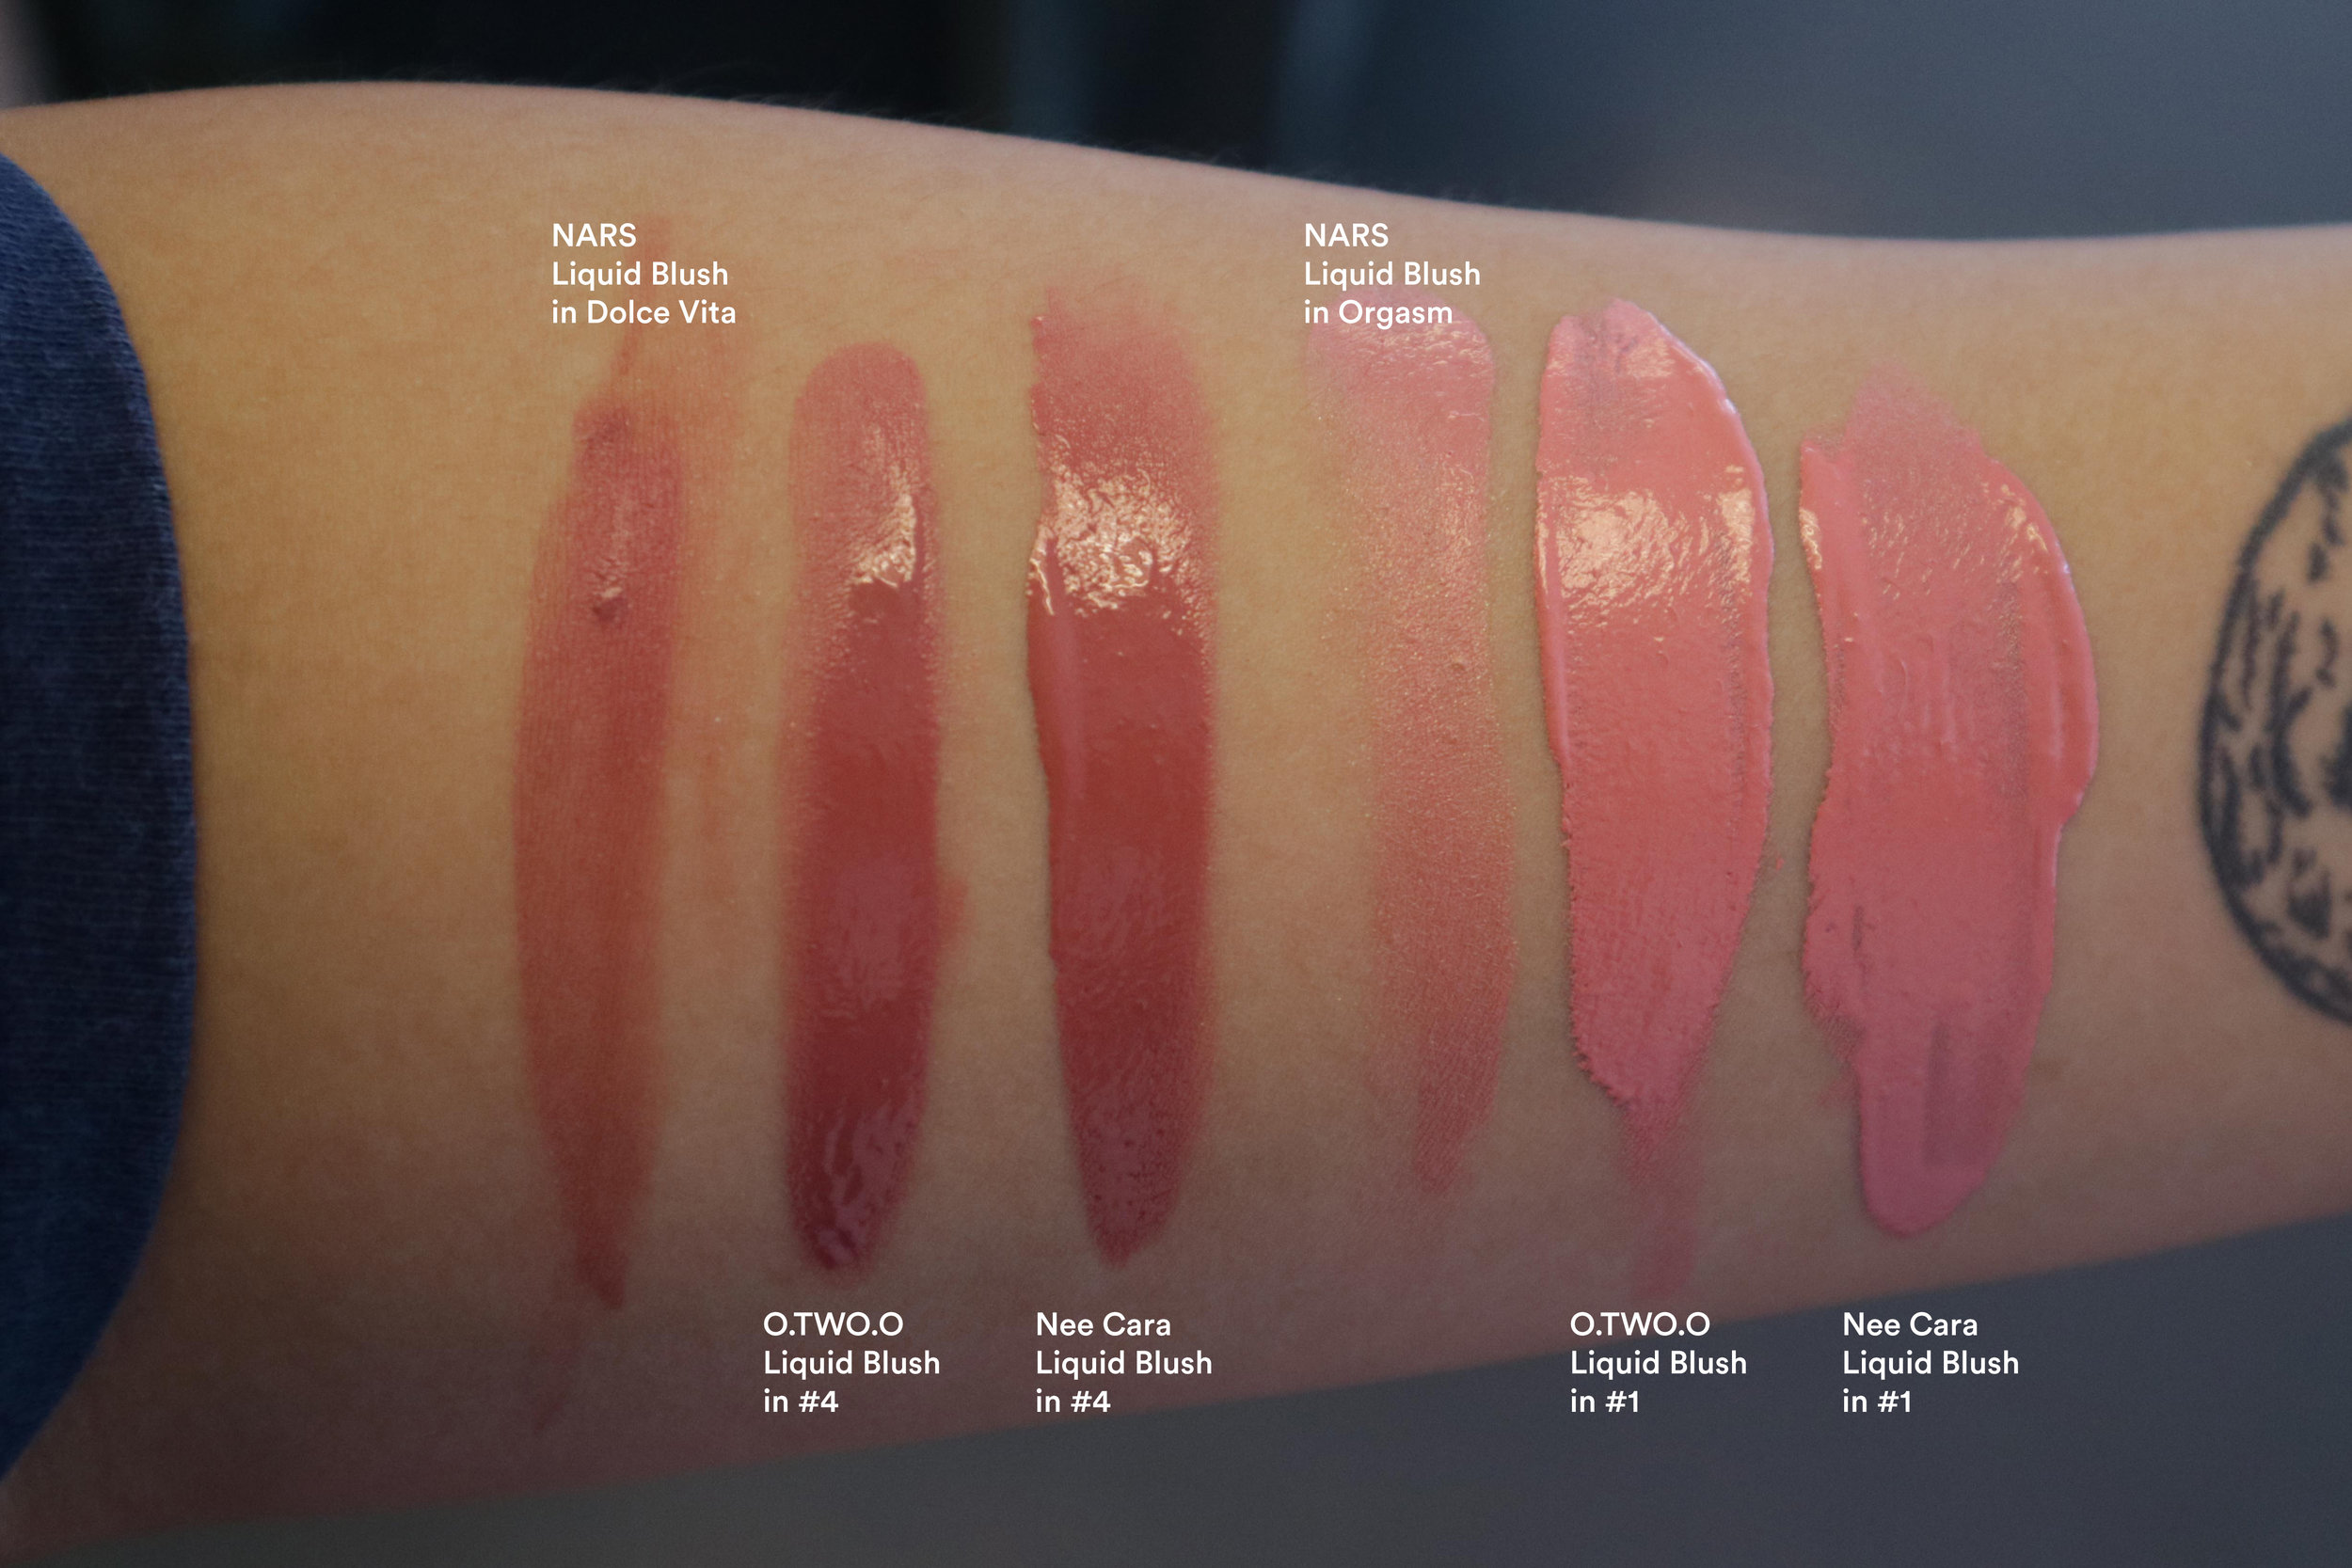 1907-nars-nee-cara-o-two-o-liquid-blush-10-SWATCHES.jpg